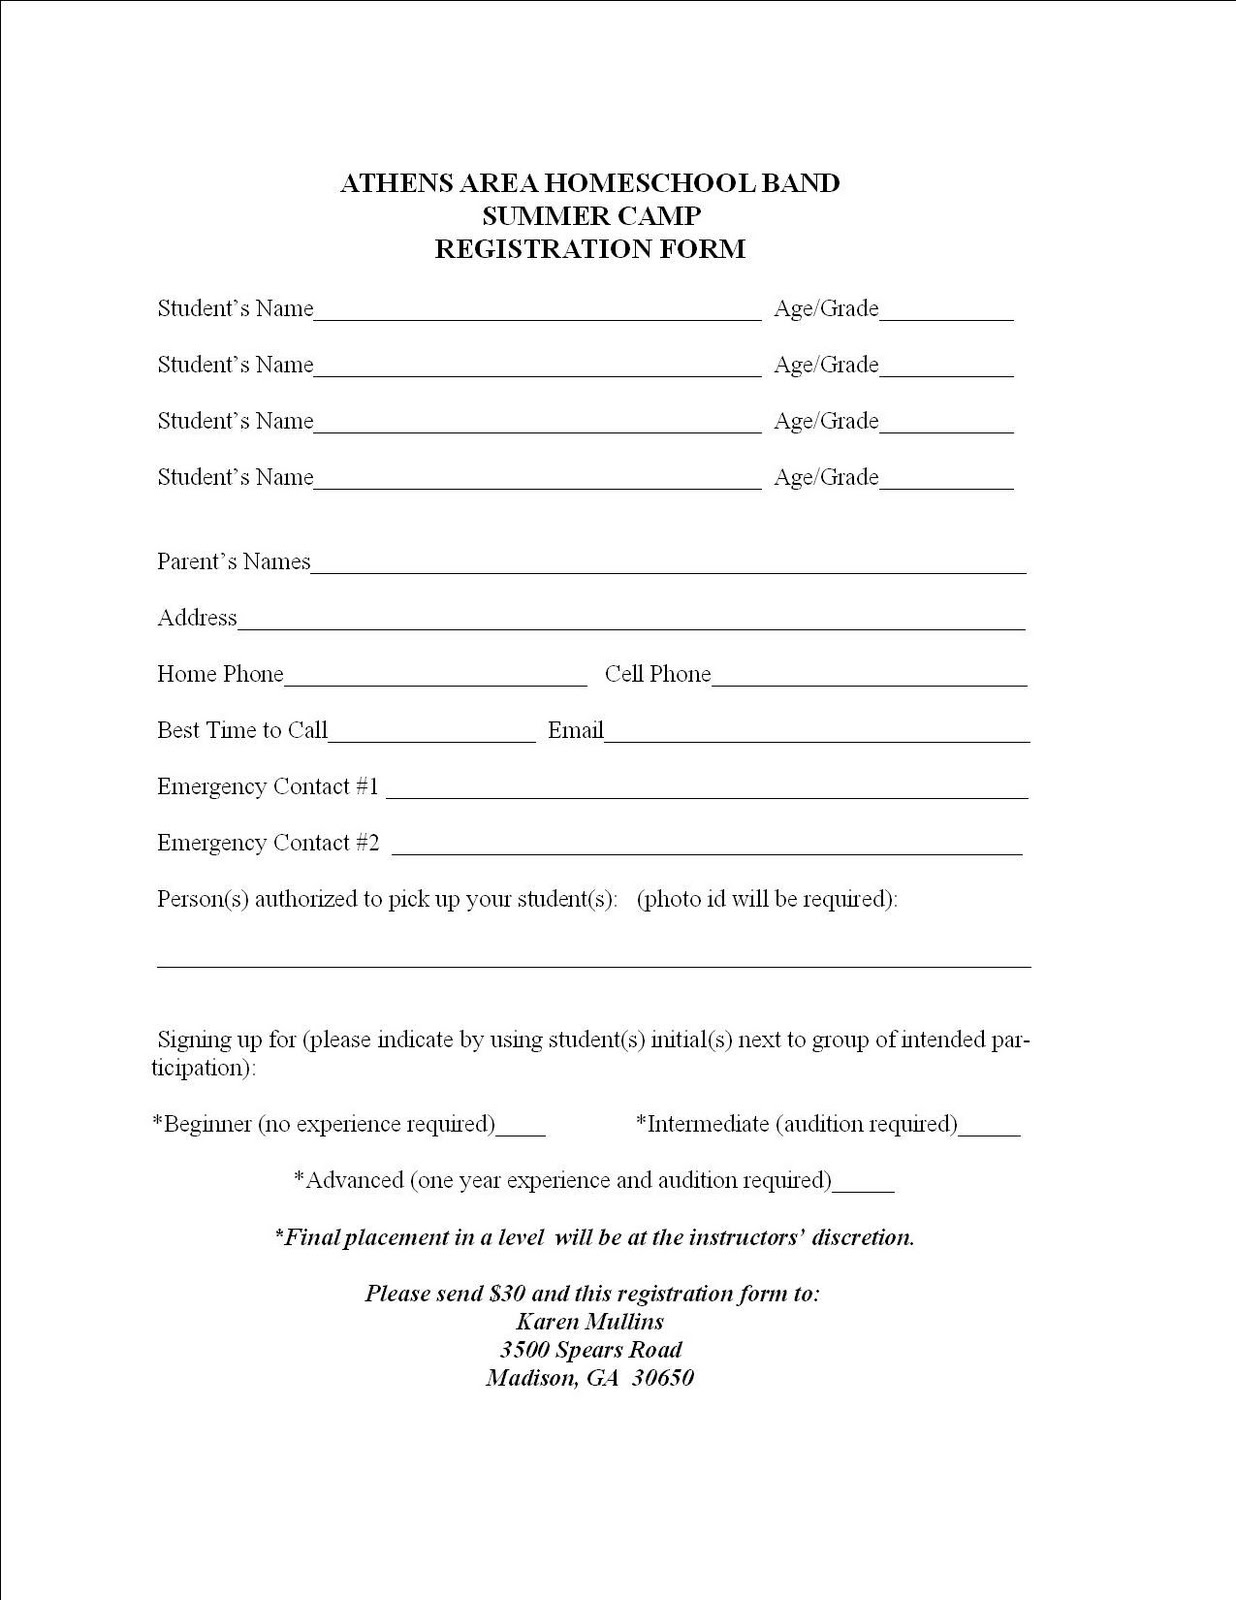 Summer c registration form